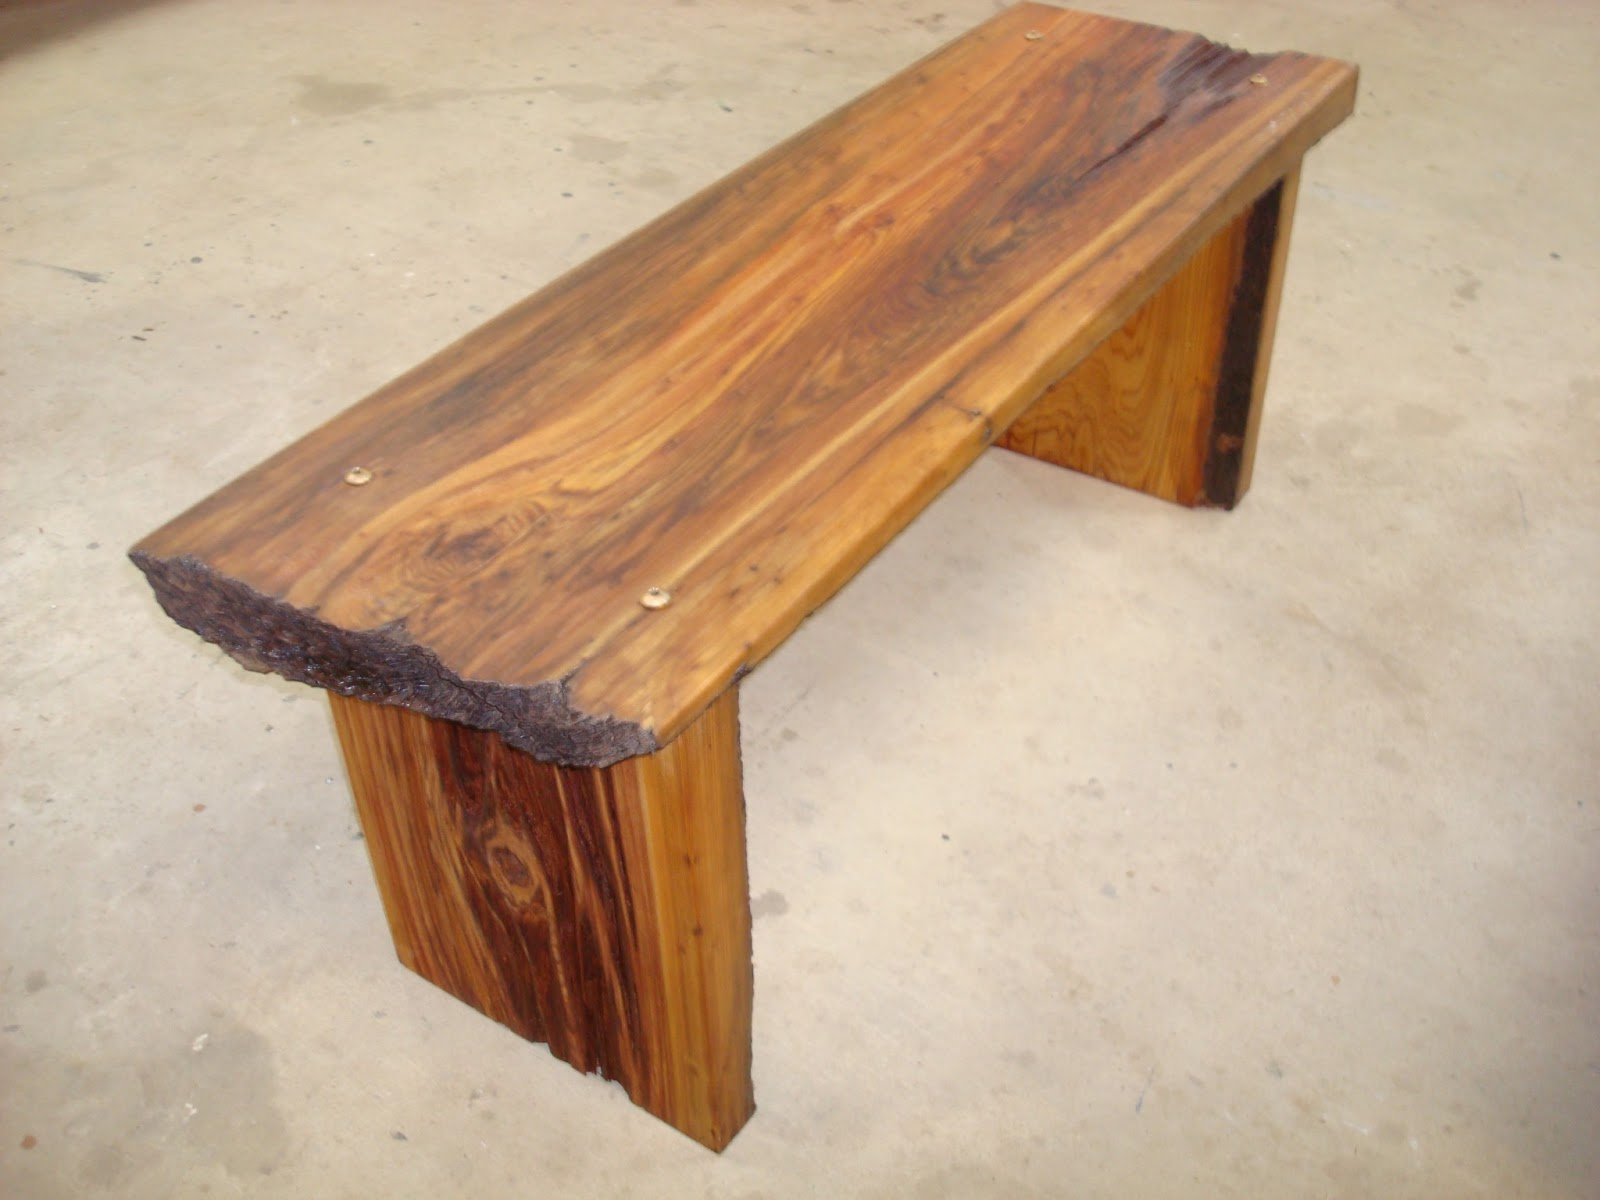 Griffin Wood Art Pecky Cypress Bench